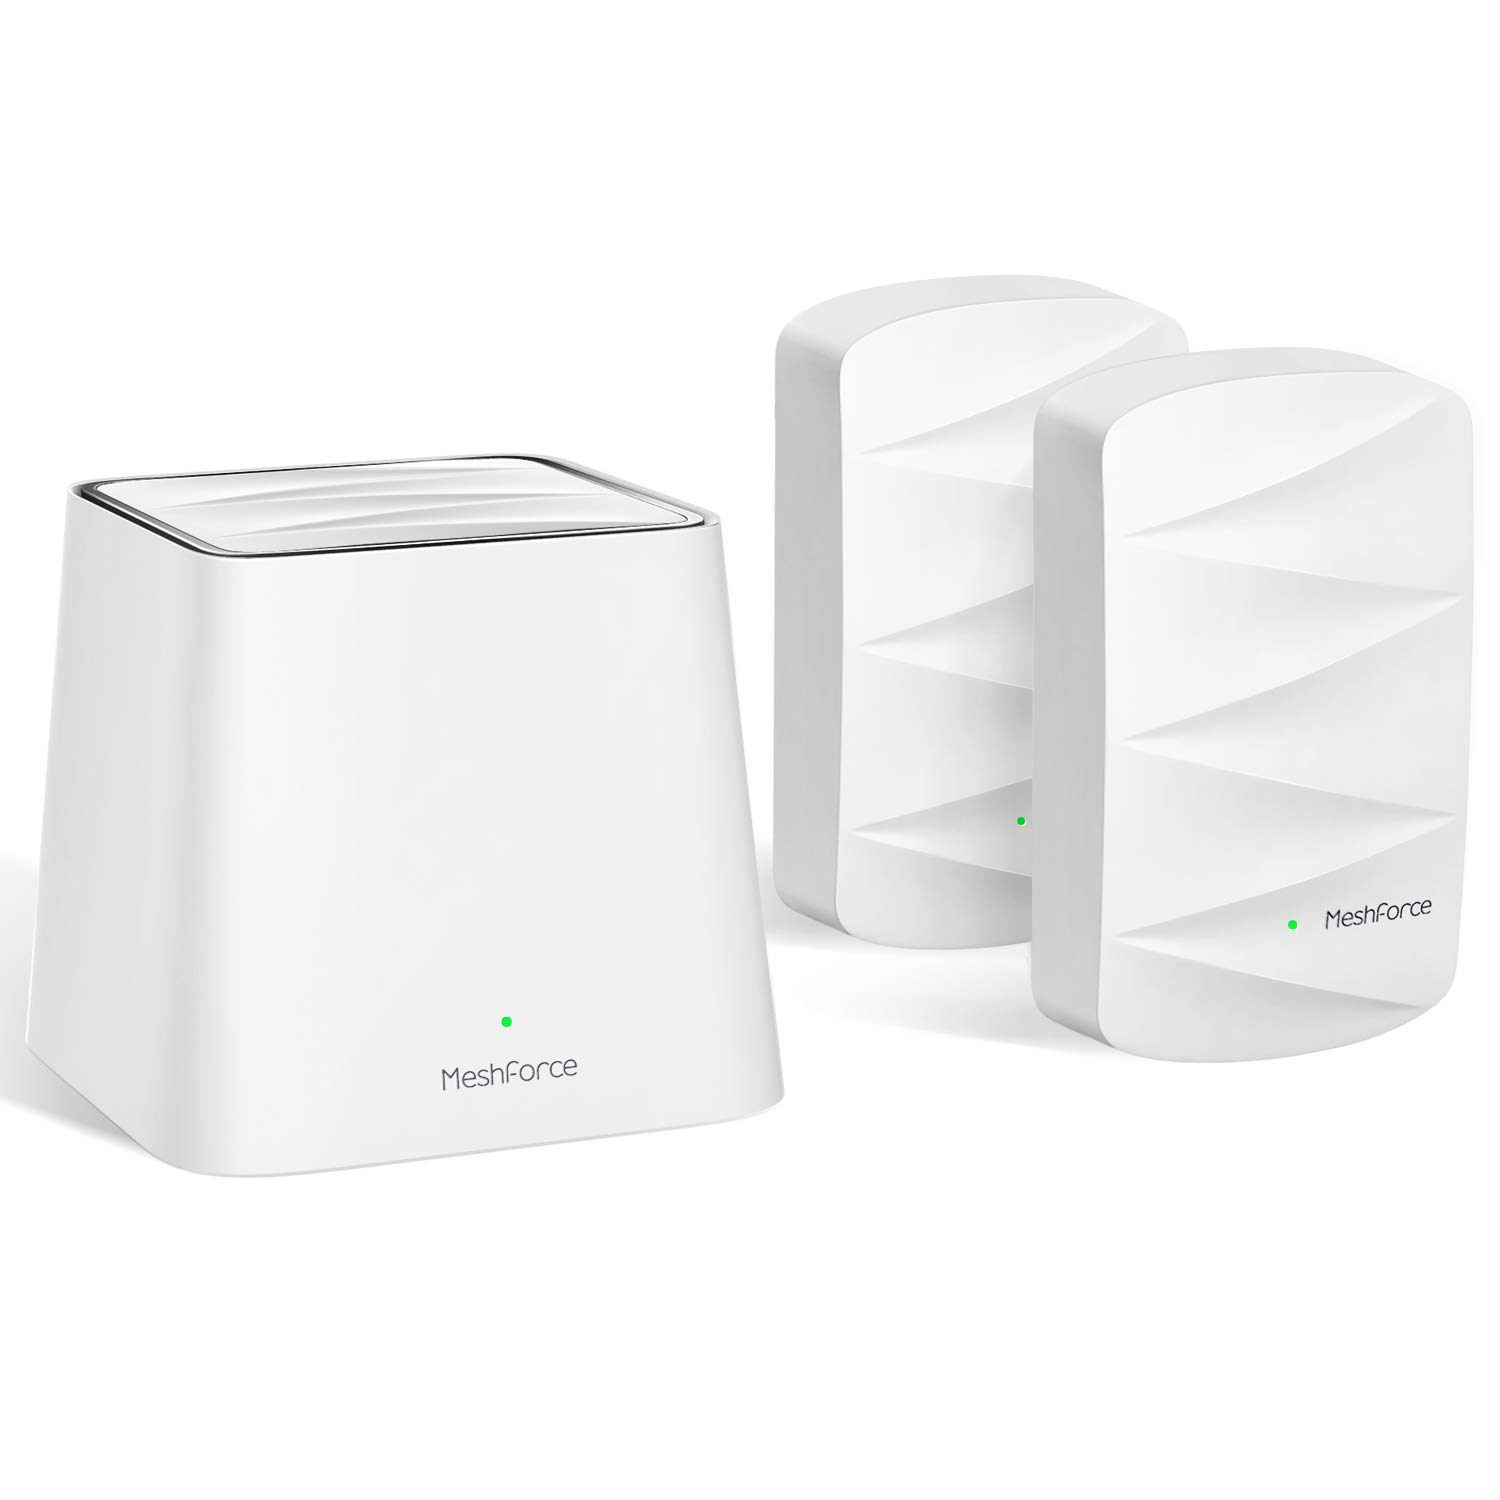 MeshForce Whole Home Mesh WiFi System M3 Suite (1 WiFi Point + 2 WiFi Dot) - Dual Band WiFi System Router Replacement and Wall Plug Extender - High Performance Wireless Coverage for 5+ Bedrooms Home by Meshforce